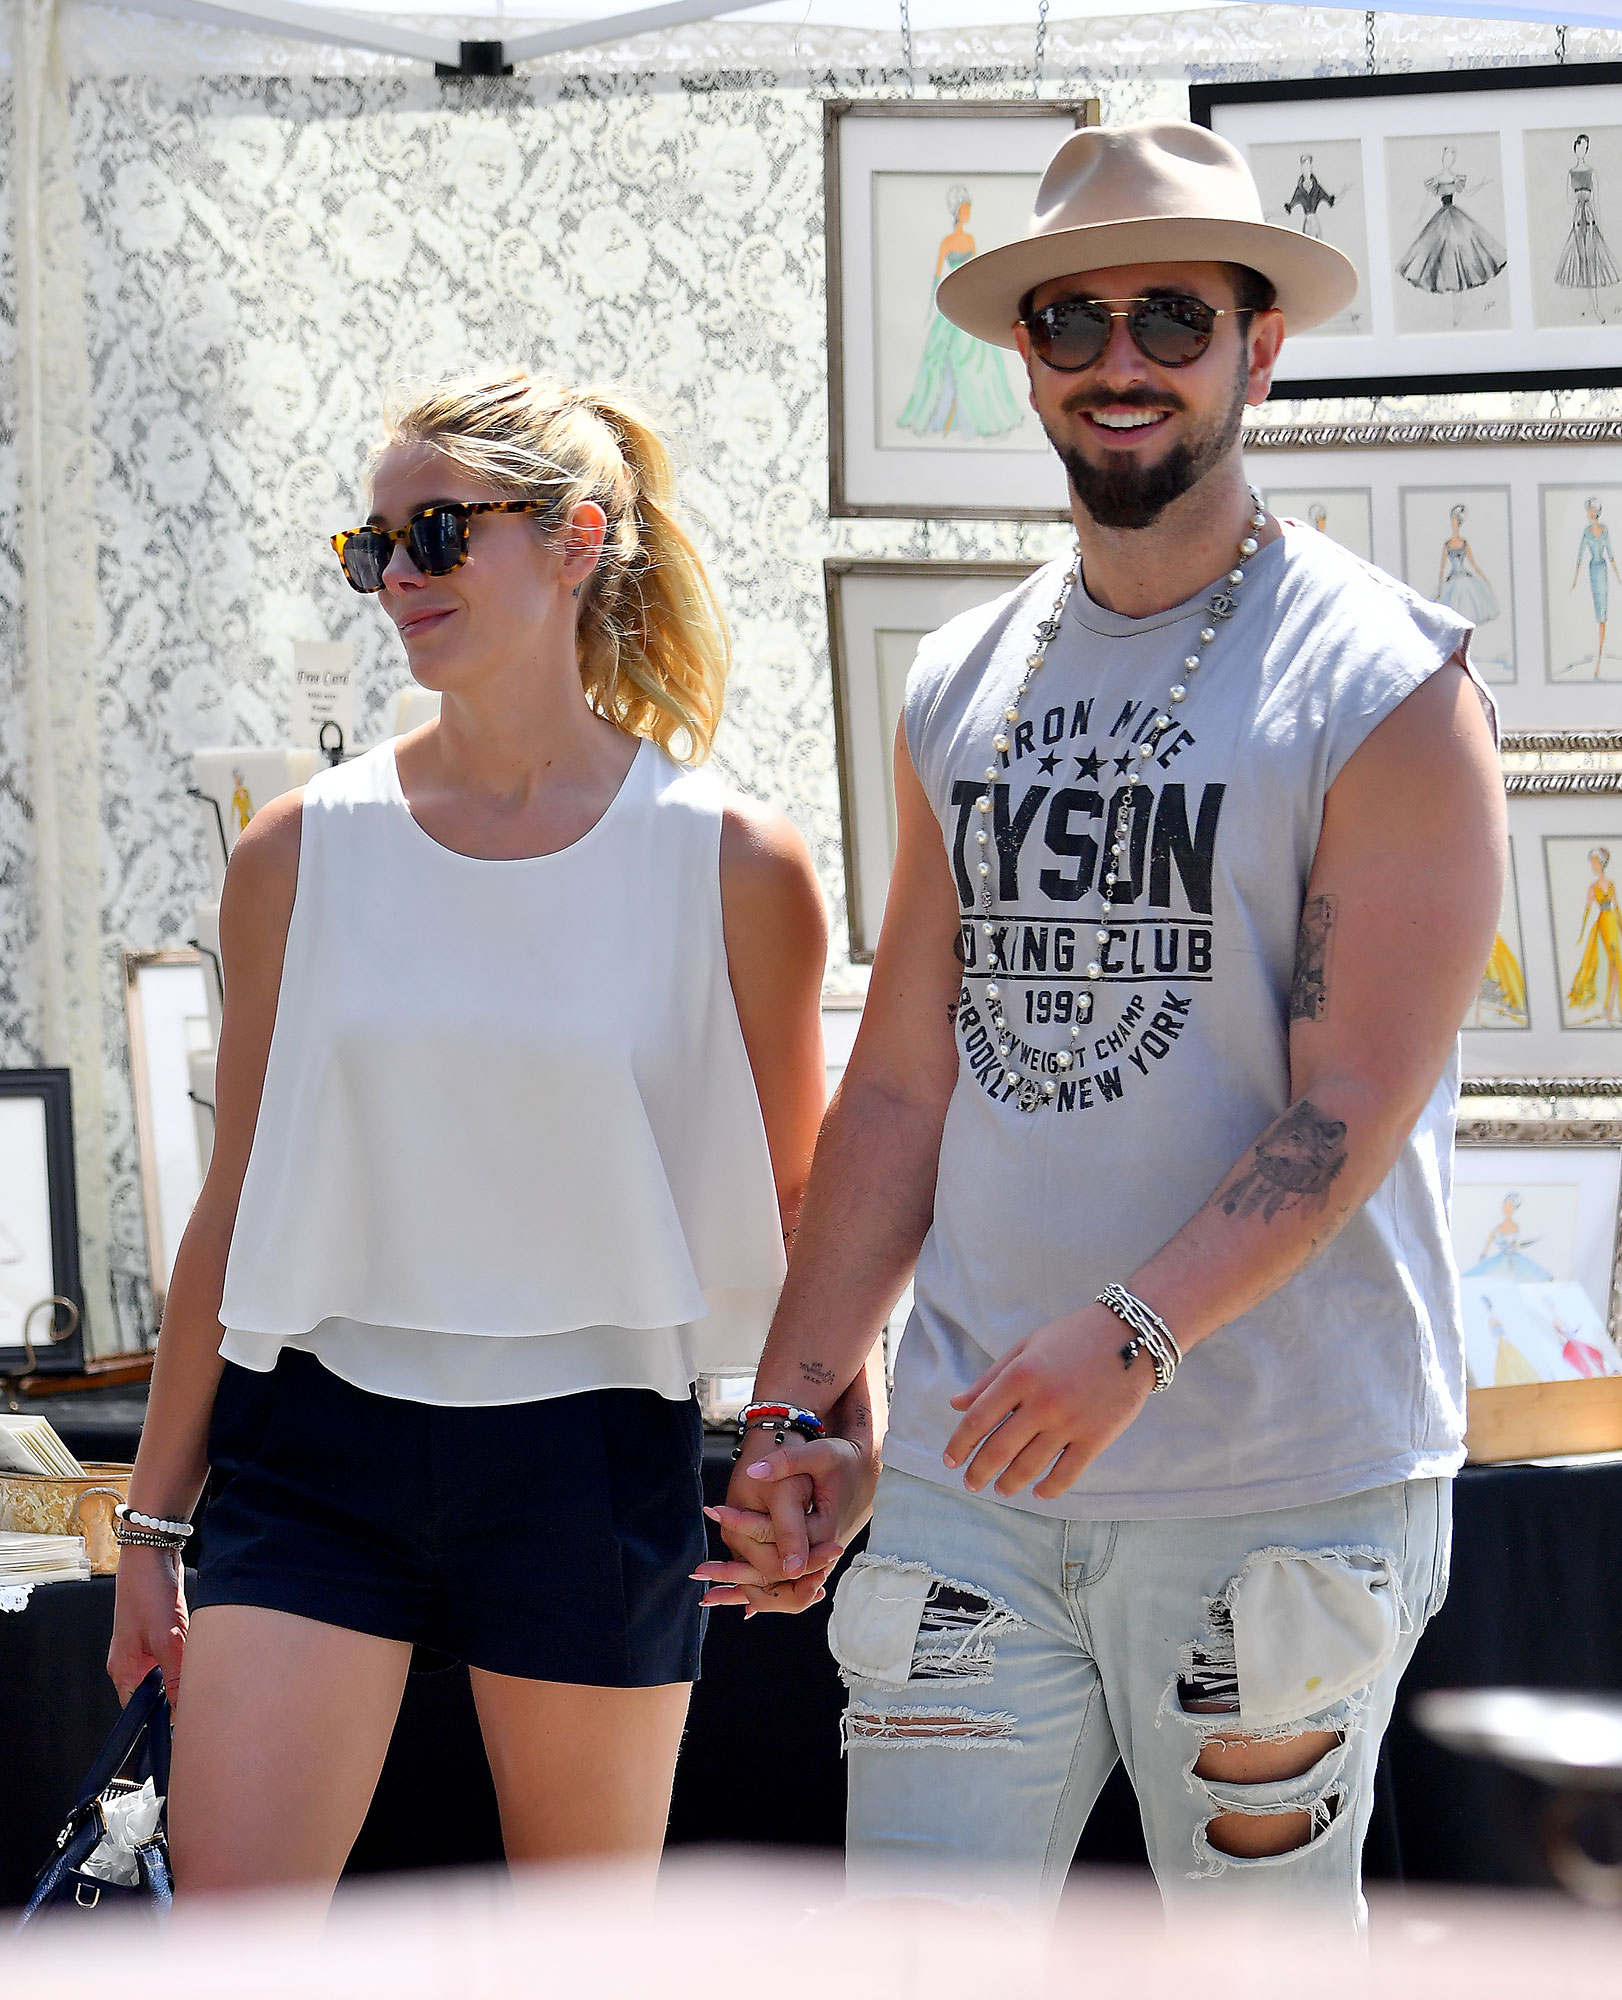 EXCLUSIVE: Ashley Greene and her Fiance Paul Khoury walk hand in hand as they shop at a local flea market in Los Angeles